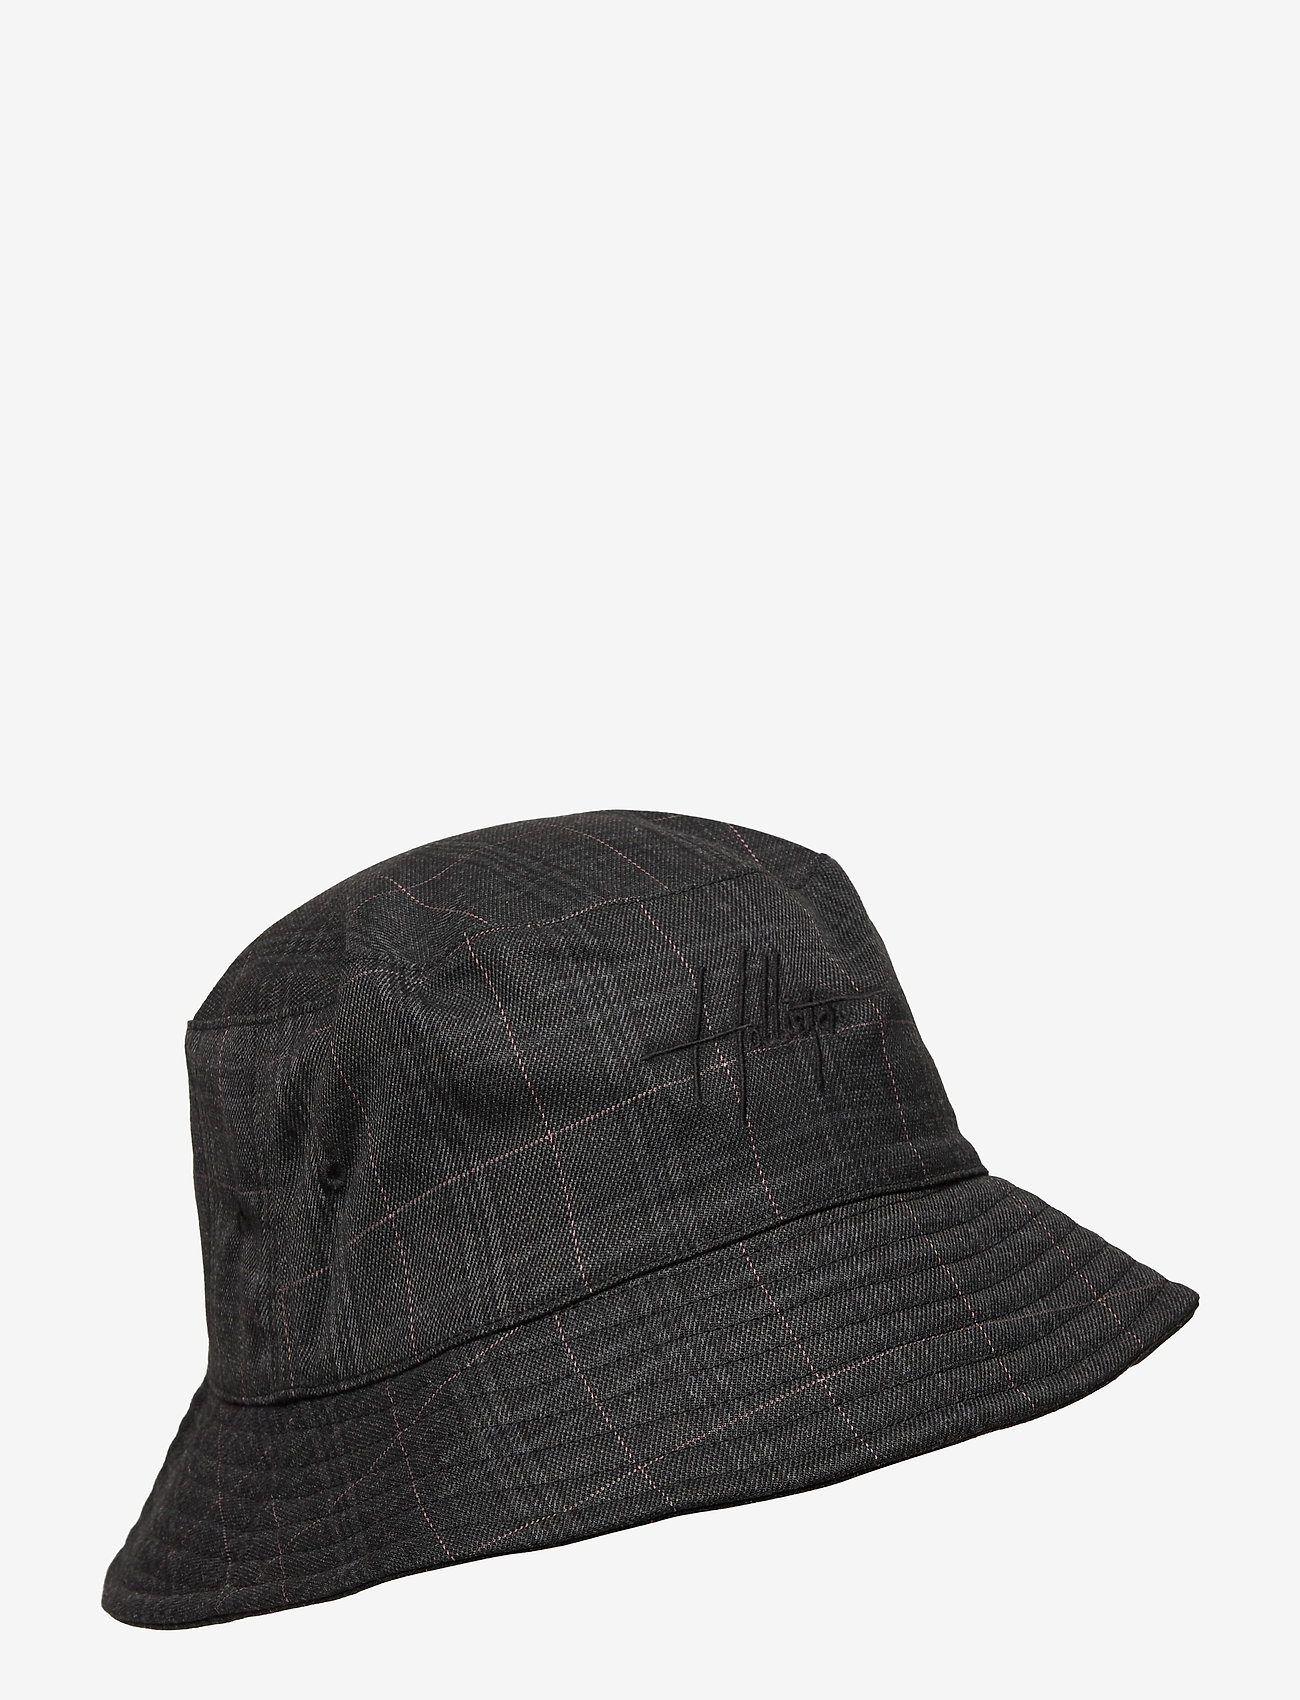 Hollister - HCo. GUYS ACCESSORIES - bucket hats - menswear print - 0